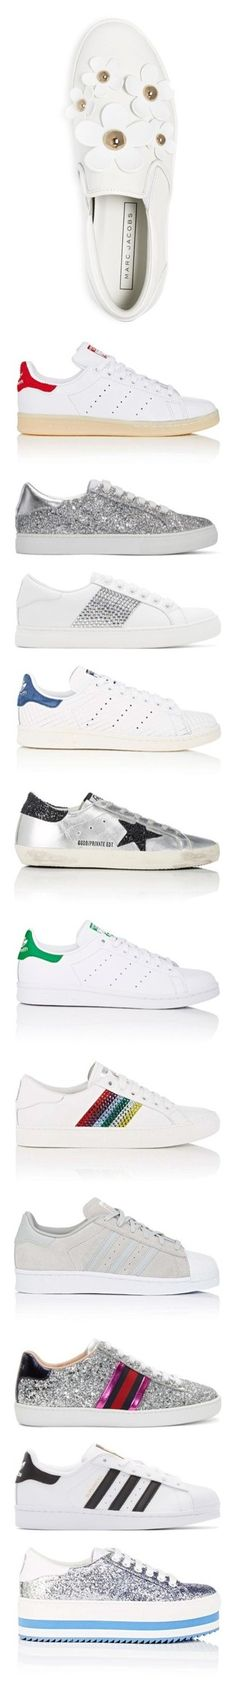 """sneakers"" by noew ❤ liked on Polyvore featuring shoes, sneakers, leather shoes, platform slip on shoes, marc jacobs shoes, pull-on sneakers, platform shoes, lace up shoes, leather tennis shoes and tennis shoes"